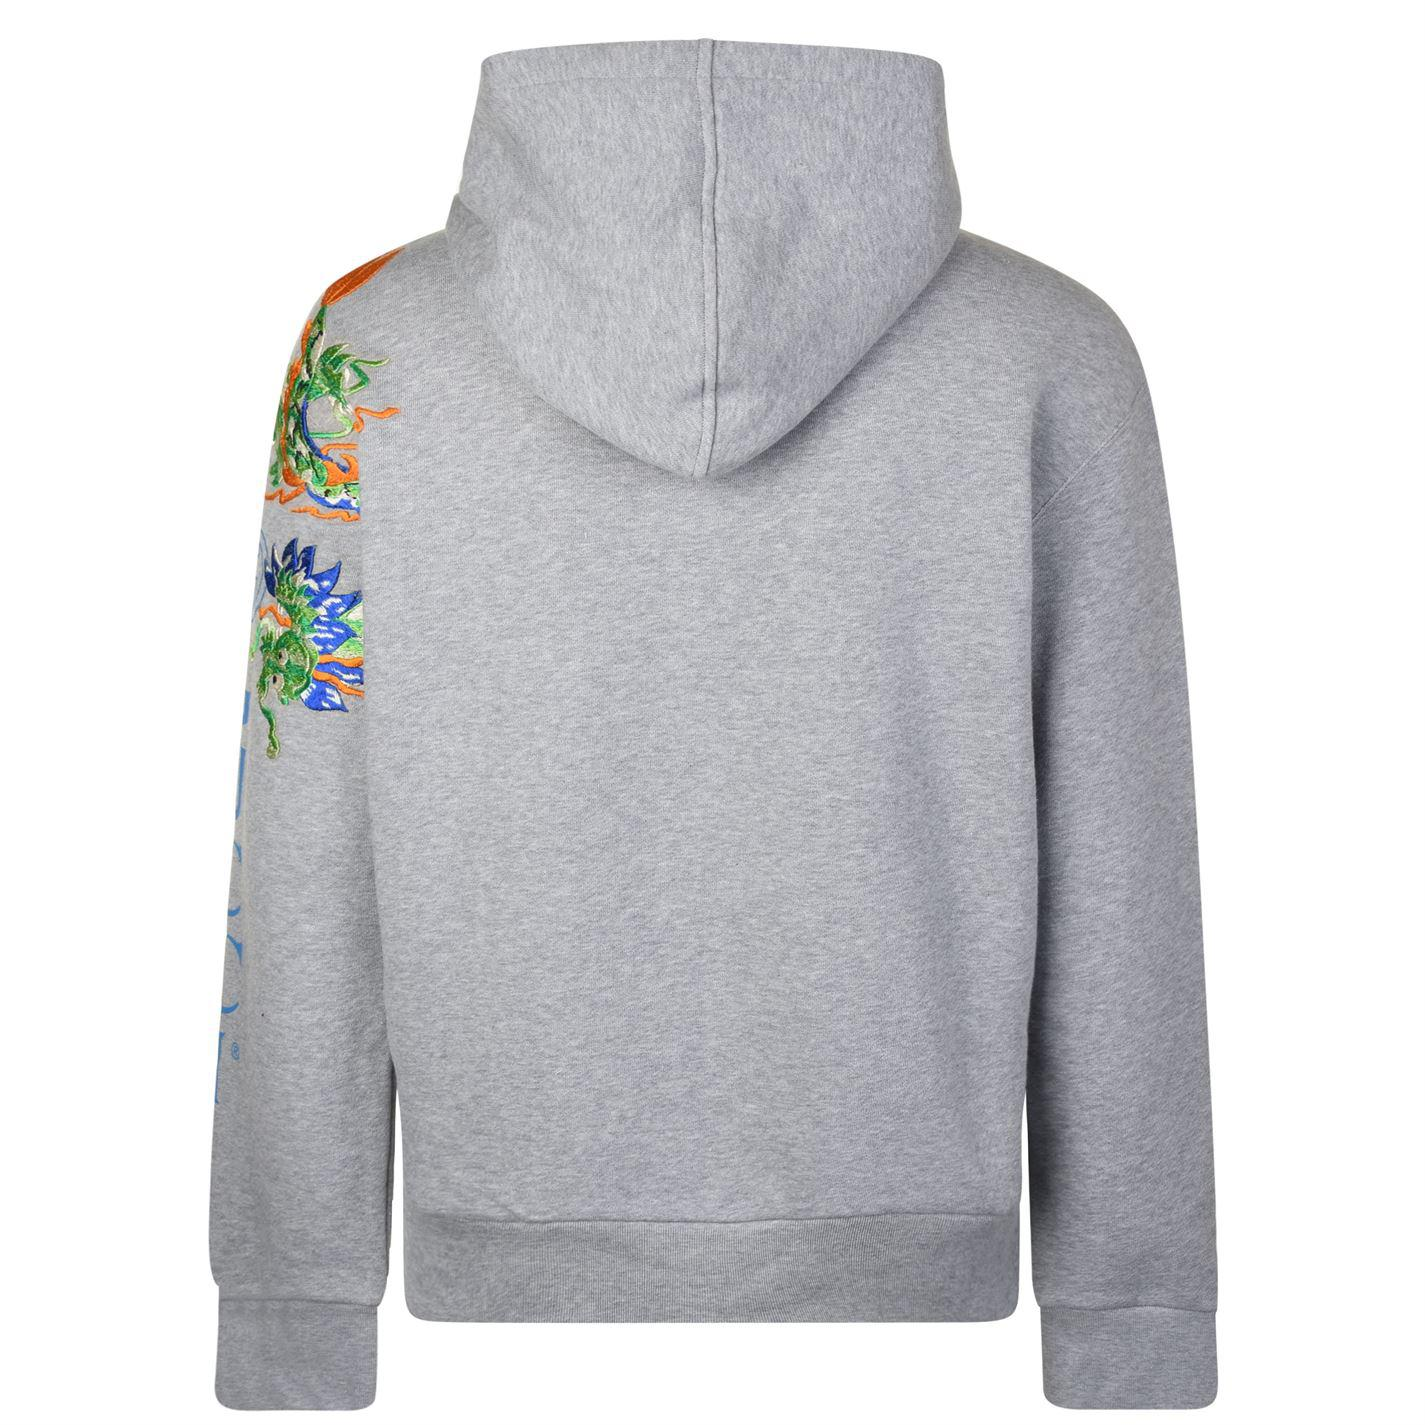 712e953e9e62cf Gucci - Gray Fake Logo Embroidered Hooded Sweatshirt for Men - Lyst. View  fullscreen